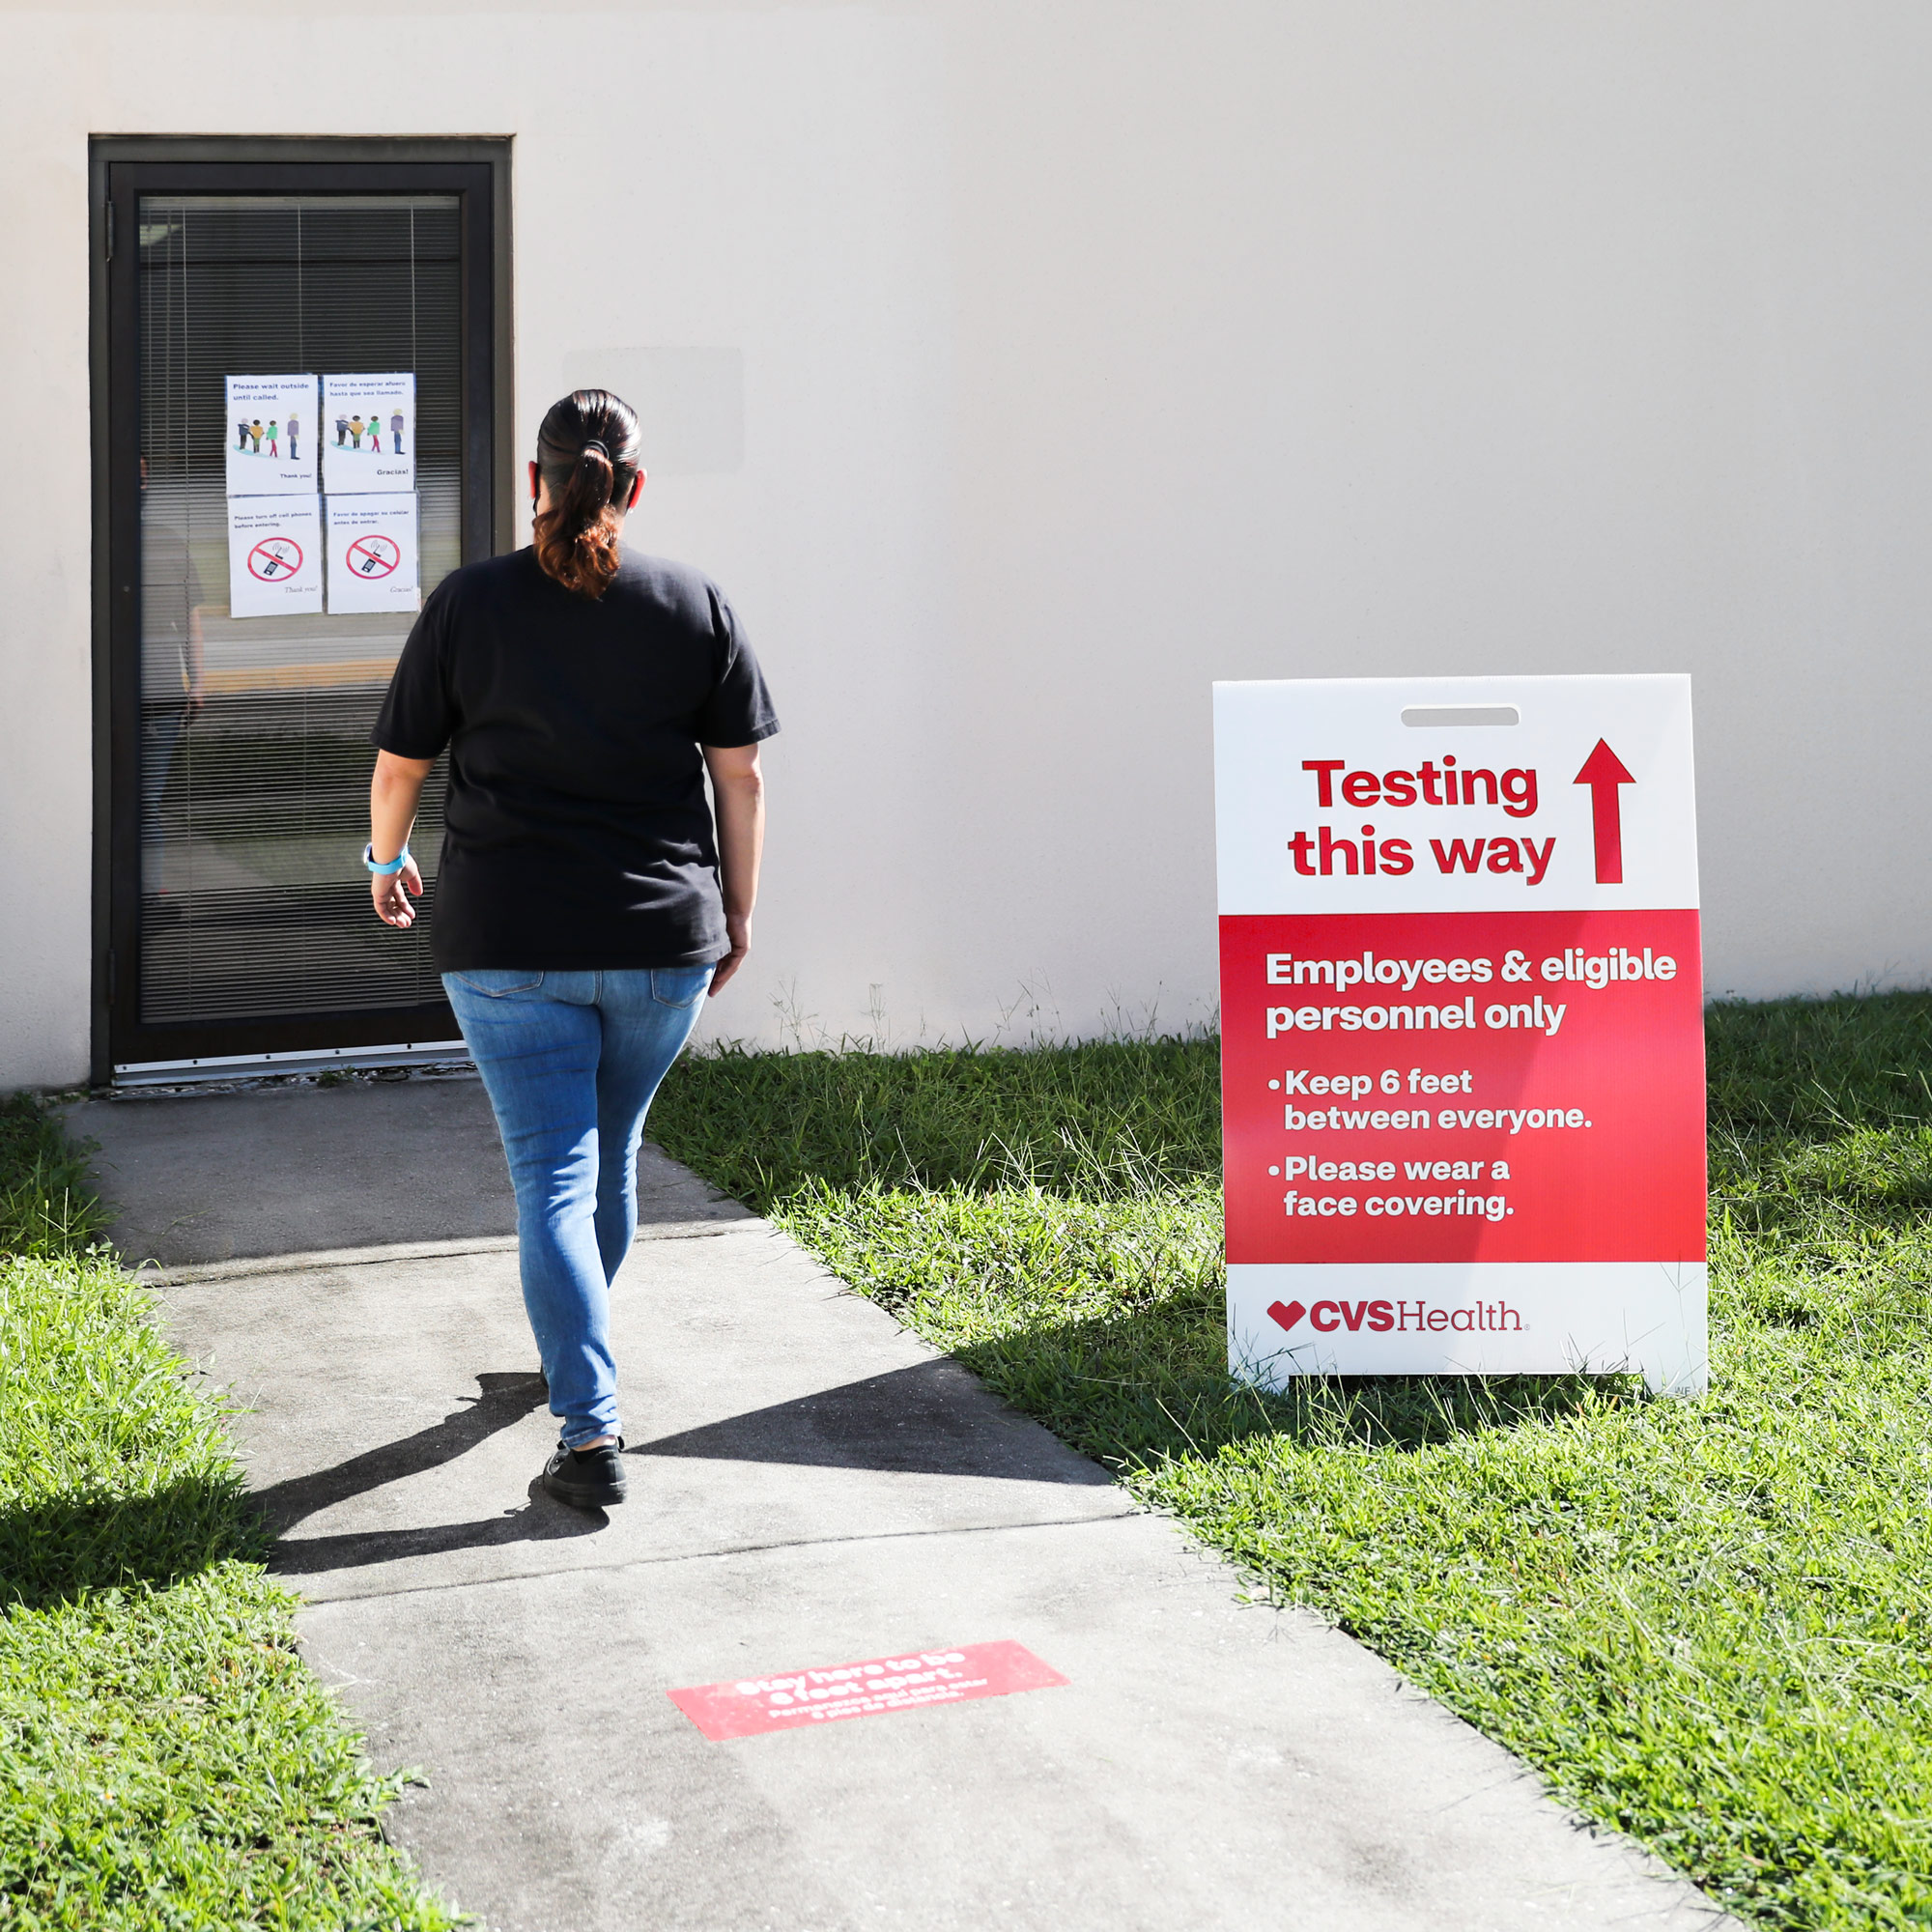 A person walks up to a CVS Health COVID-19 testing location.